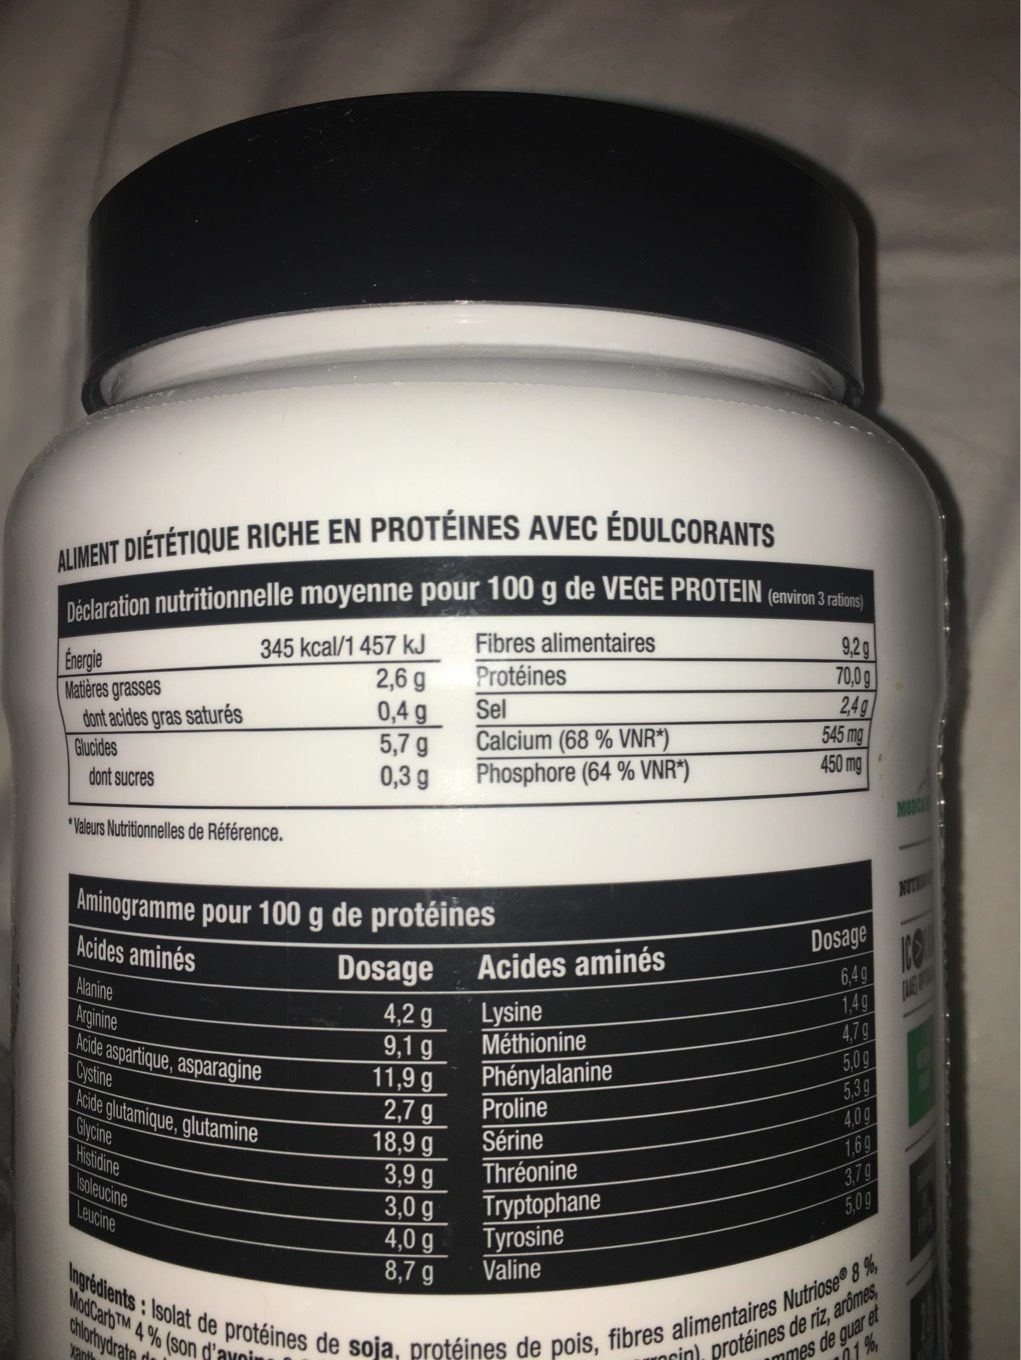 Vege protein - Nutrition facts